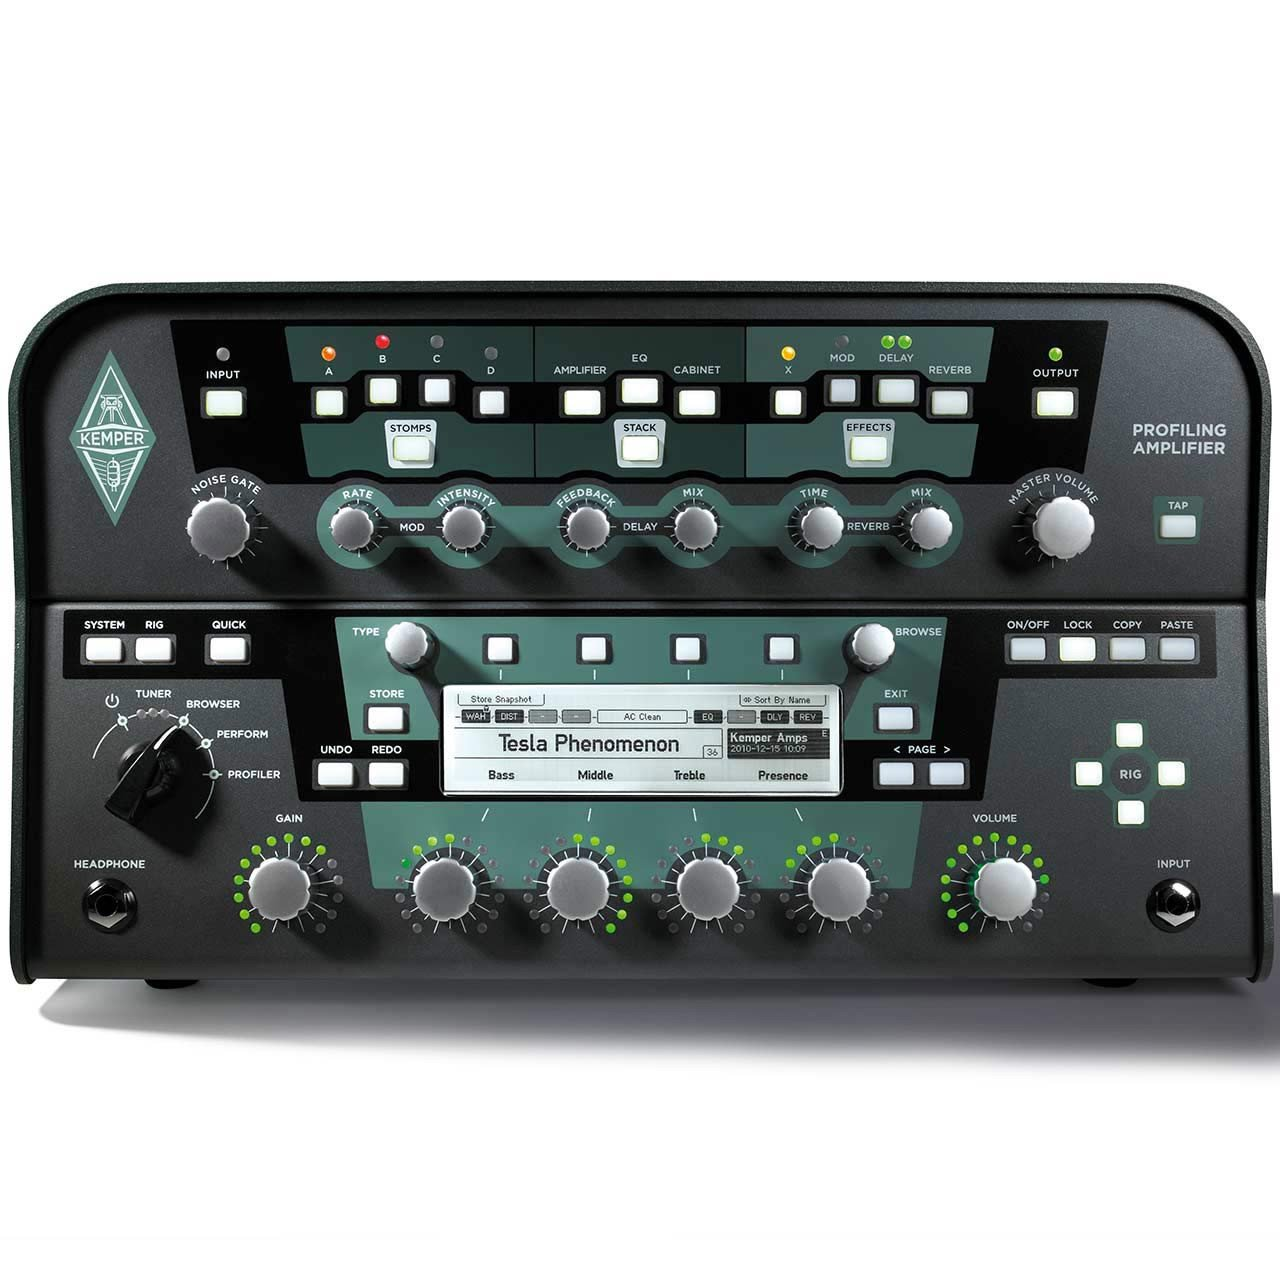 Guitar Amplifiers - Kemper Profiler Powerhead - 600 Watt Profiling Amplifier